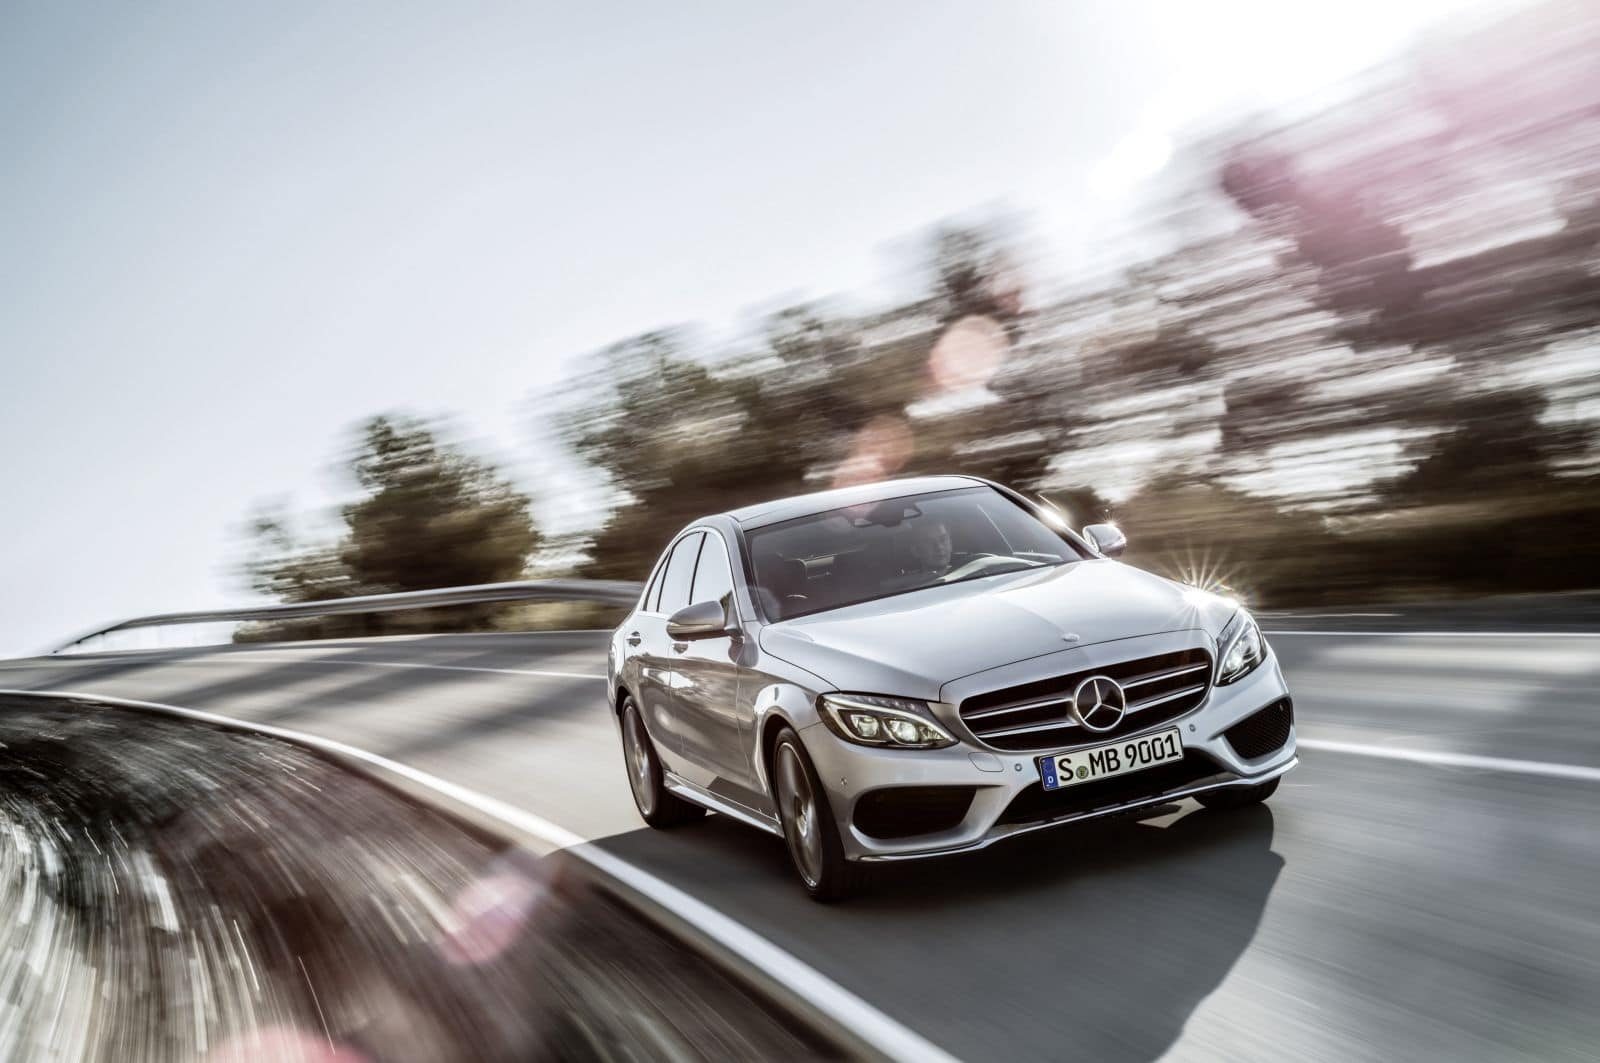 Mercedes Classe C 2014 : officielle !